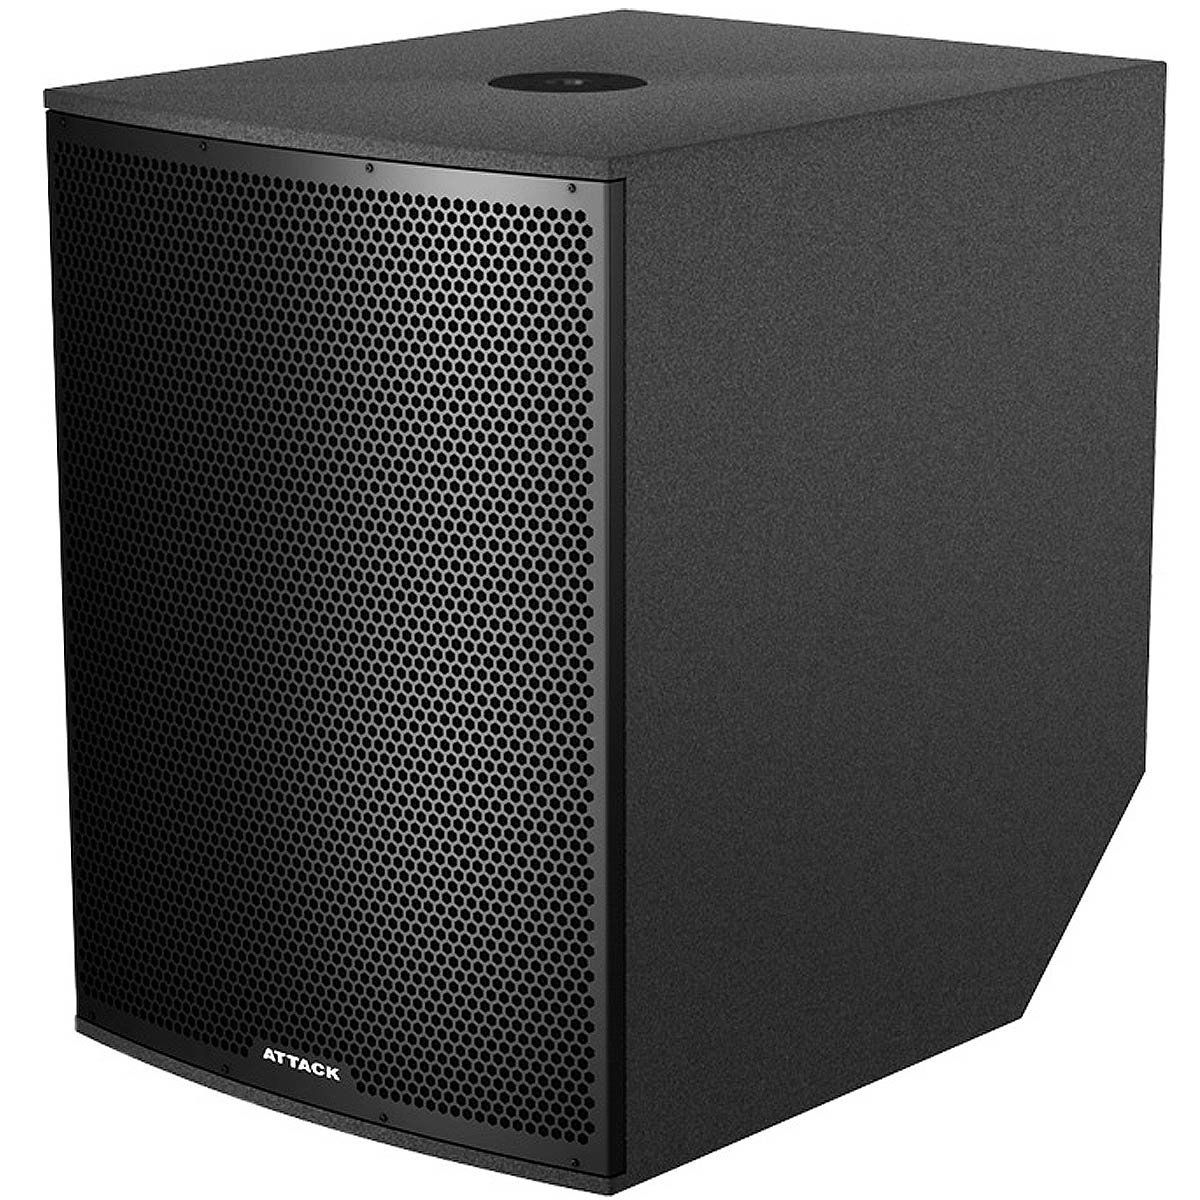 Subwoofer Passivo Fal 18 Pol 800W VRS 1880 P - Attack